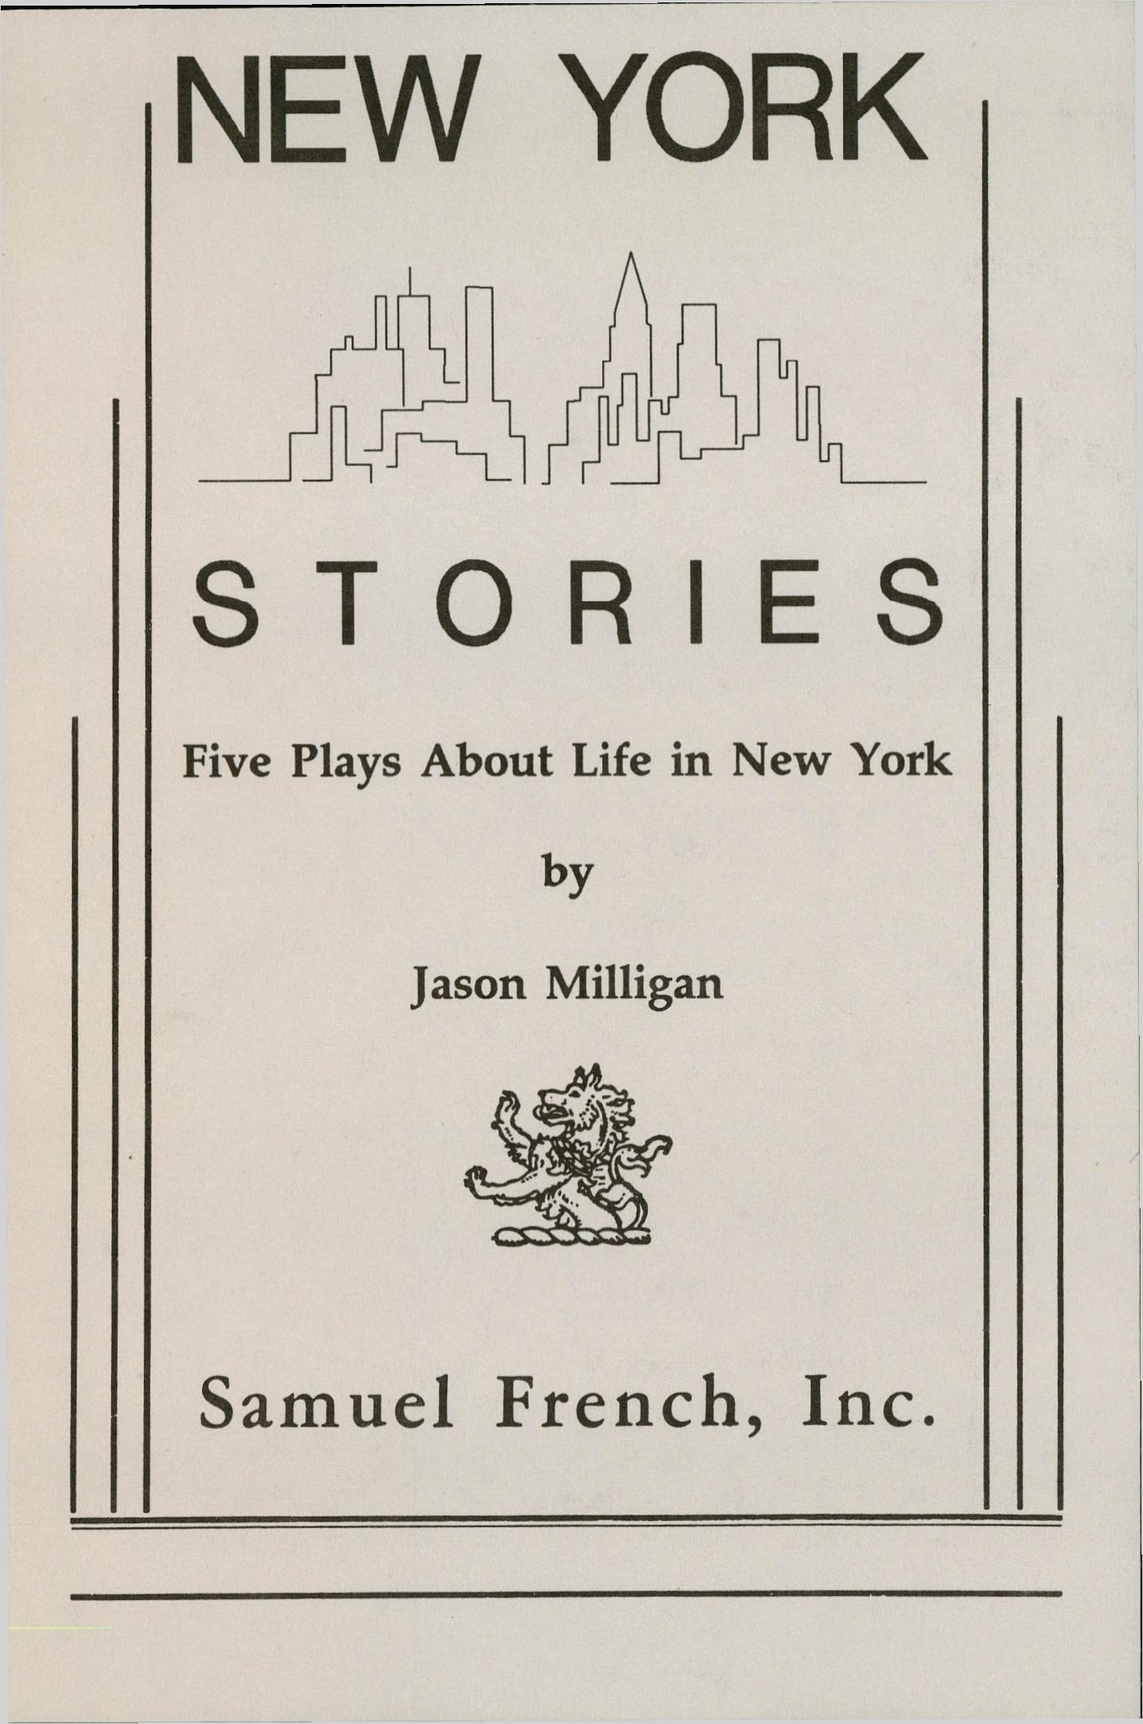 New York Stories: Five Plays About Life In New York